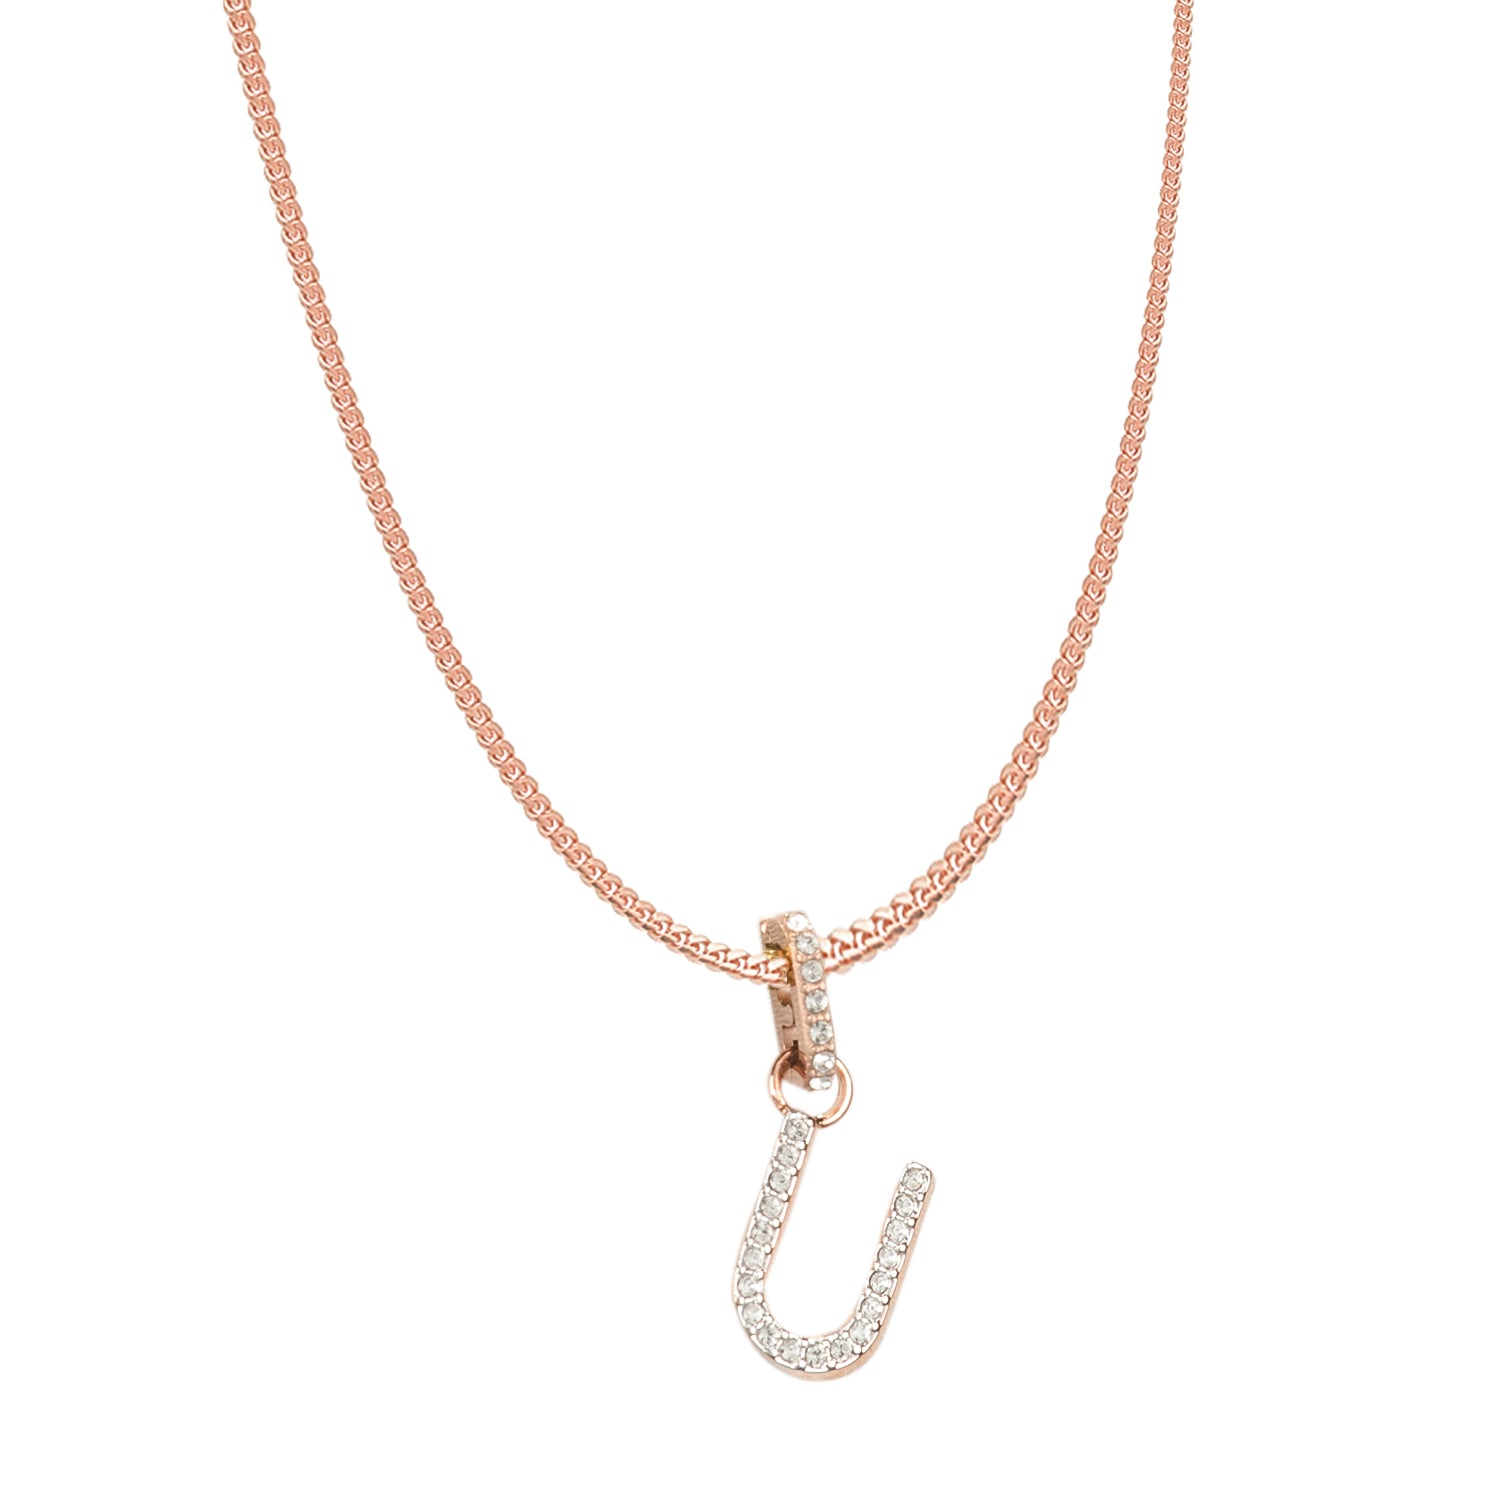 Swarovski Remix Collection U White Charm In Rose-Gold Tone Plated | Shop Luxury Swarovski Charm Online